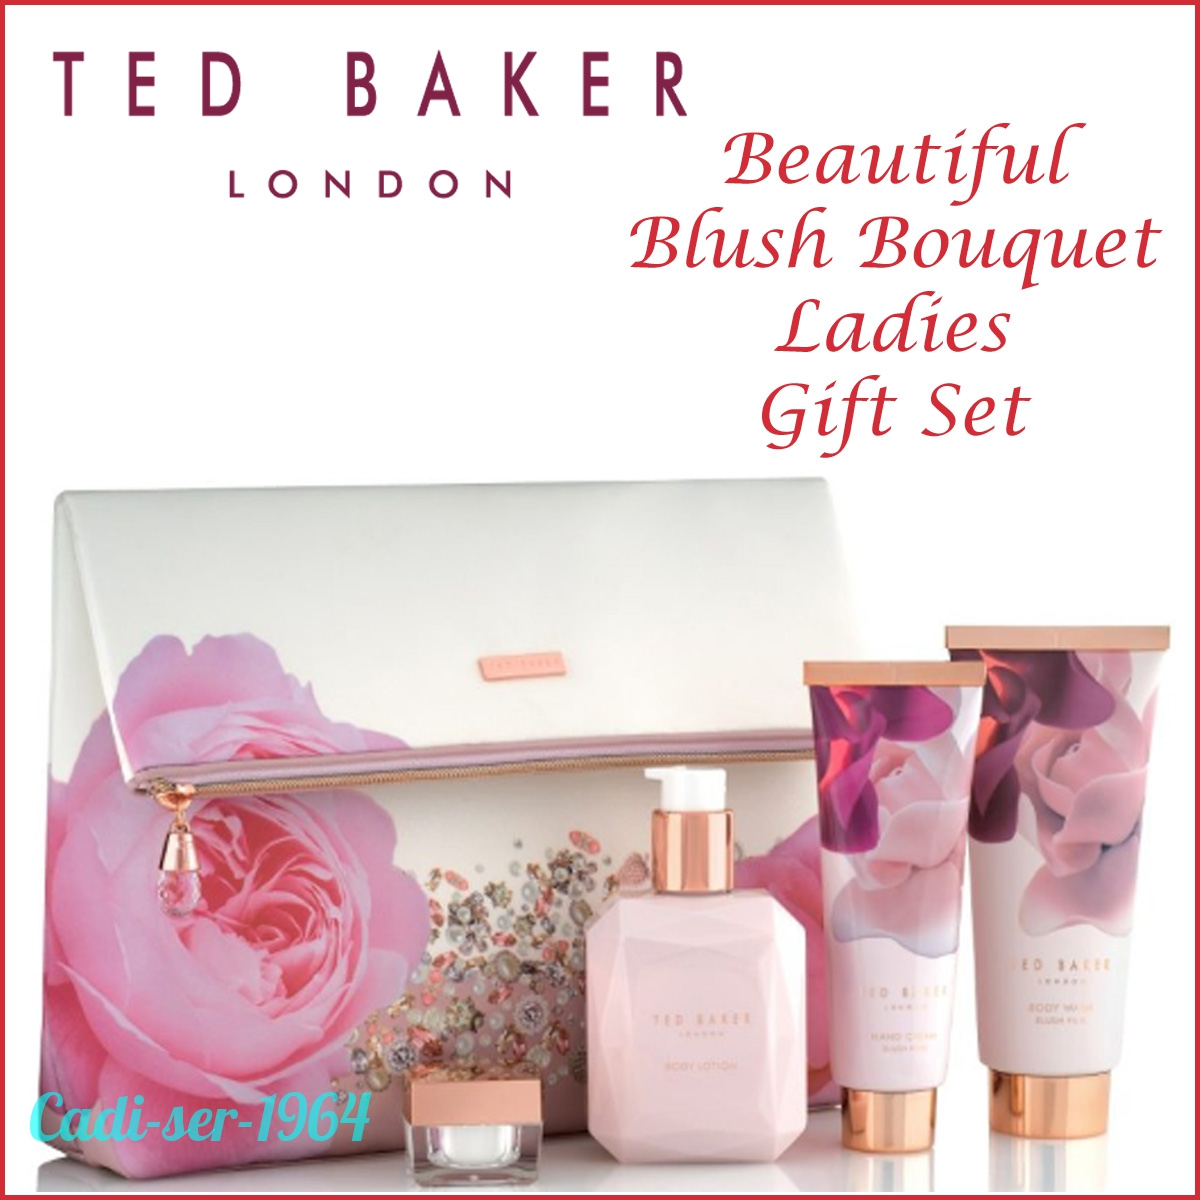 69e7f3d2f7a5d0 Details about NEW Ted Baker Blush Bouquet Cosmetic Gift Bag With Toiletries  Ladies Gift Set